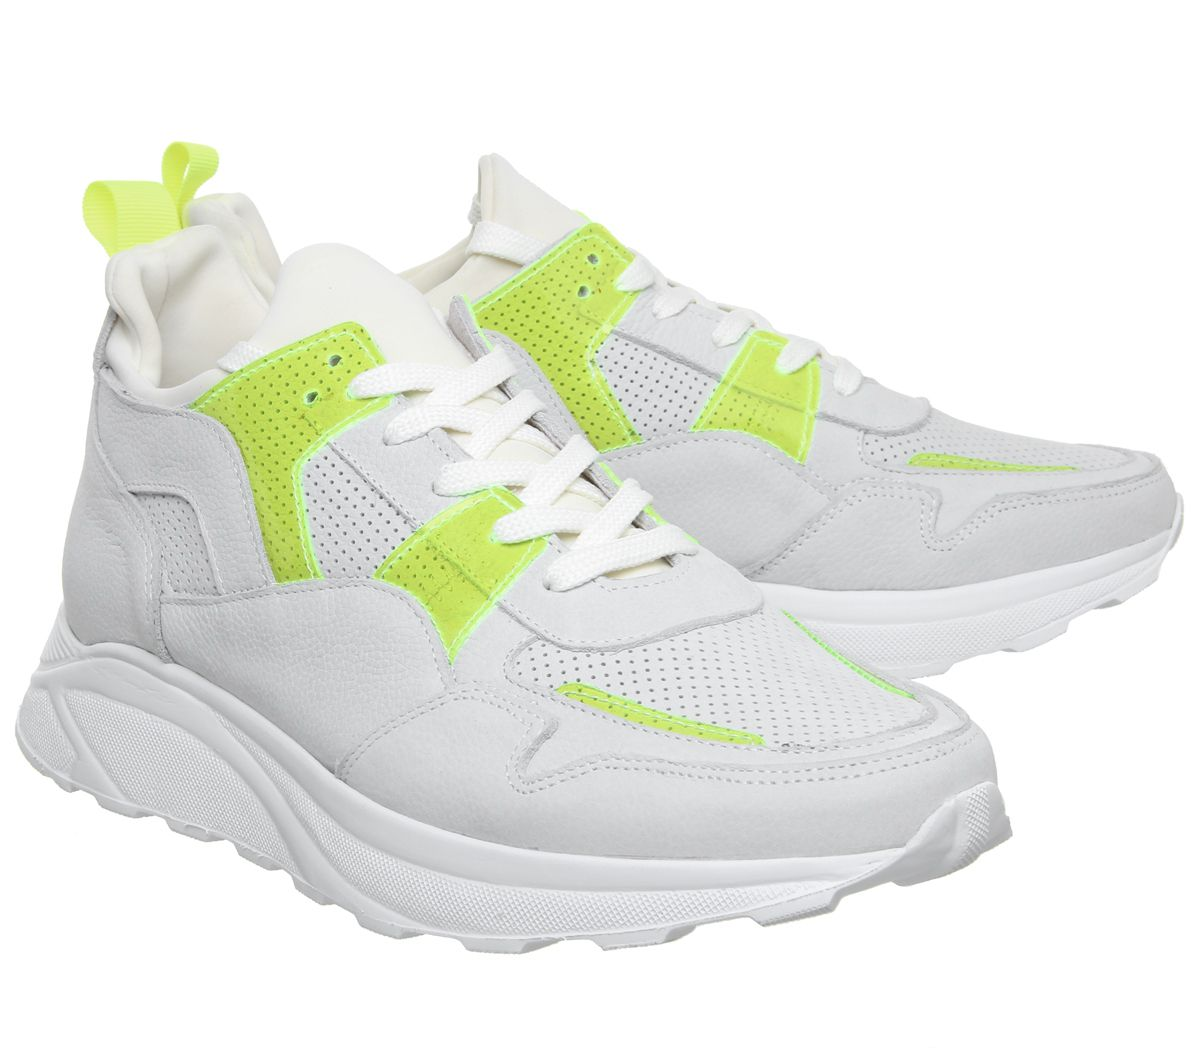 Mens-Office-Lacrosse-Trainers-White-Yellow-Nubuck-Casual-Shoes thumbnail 7